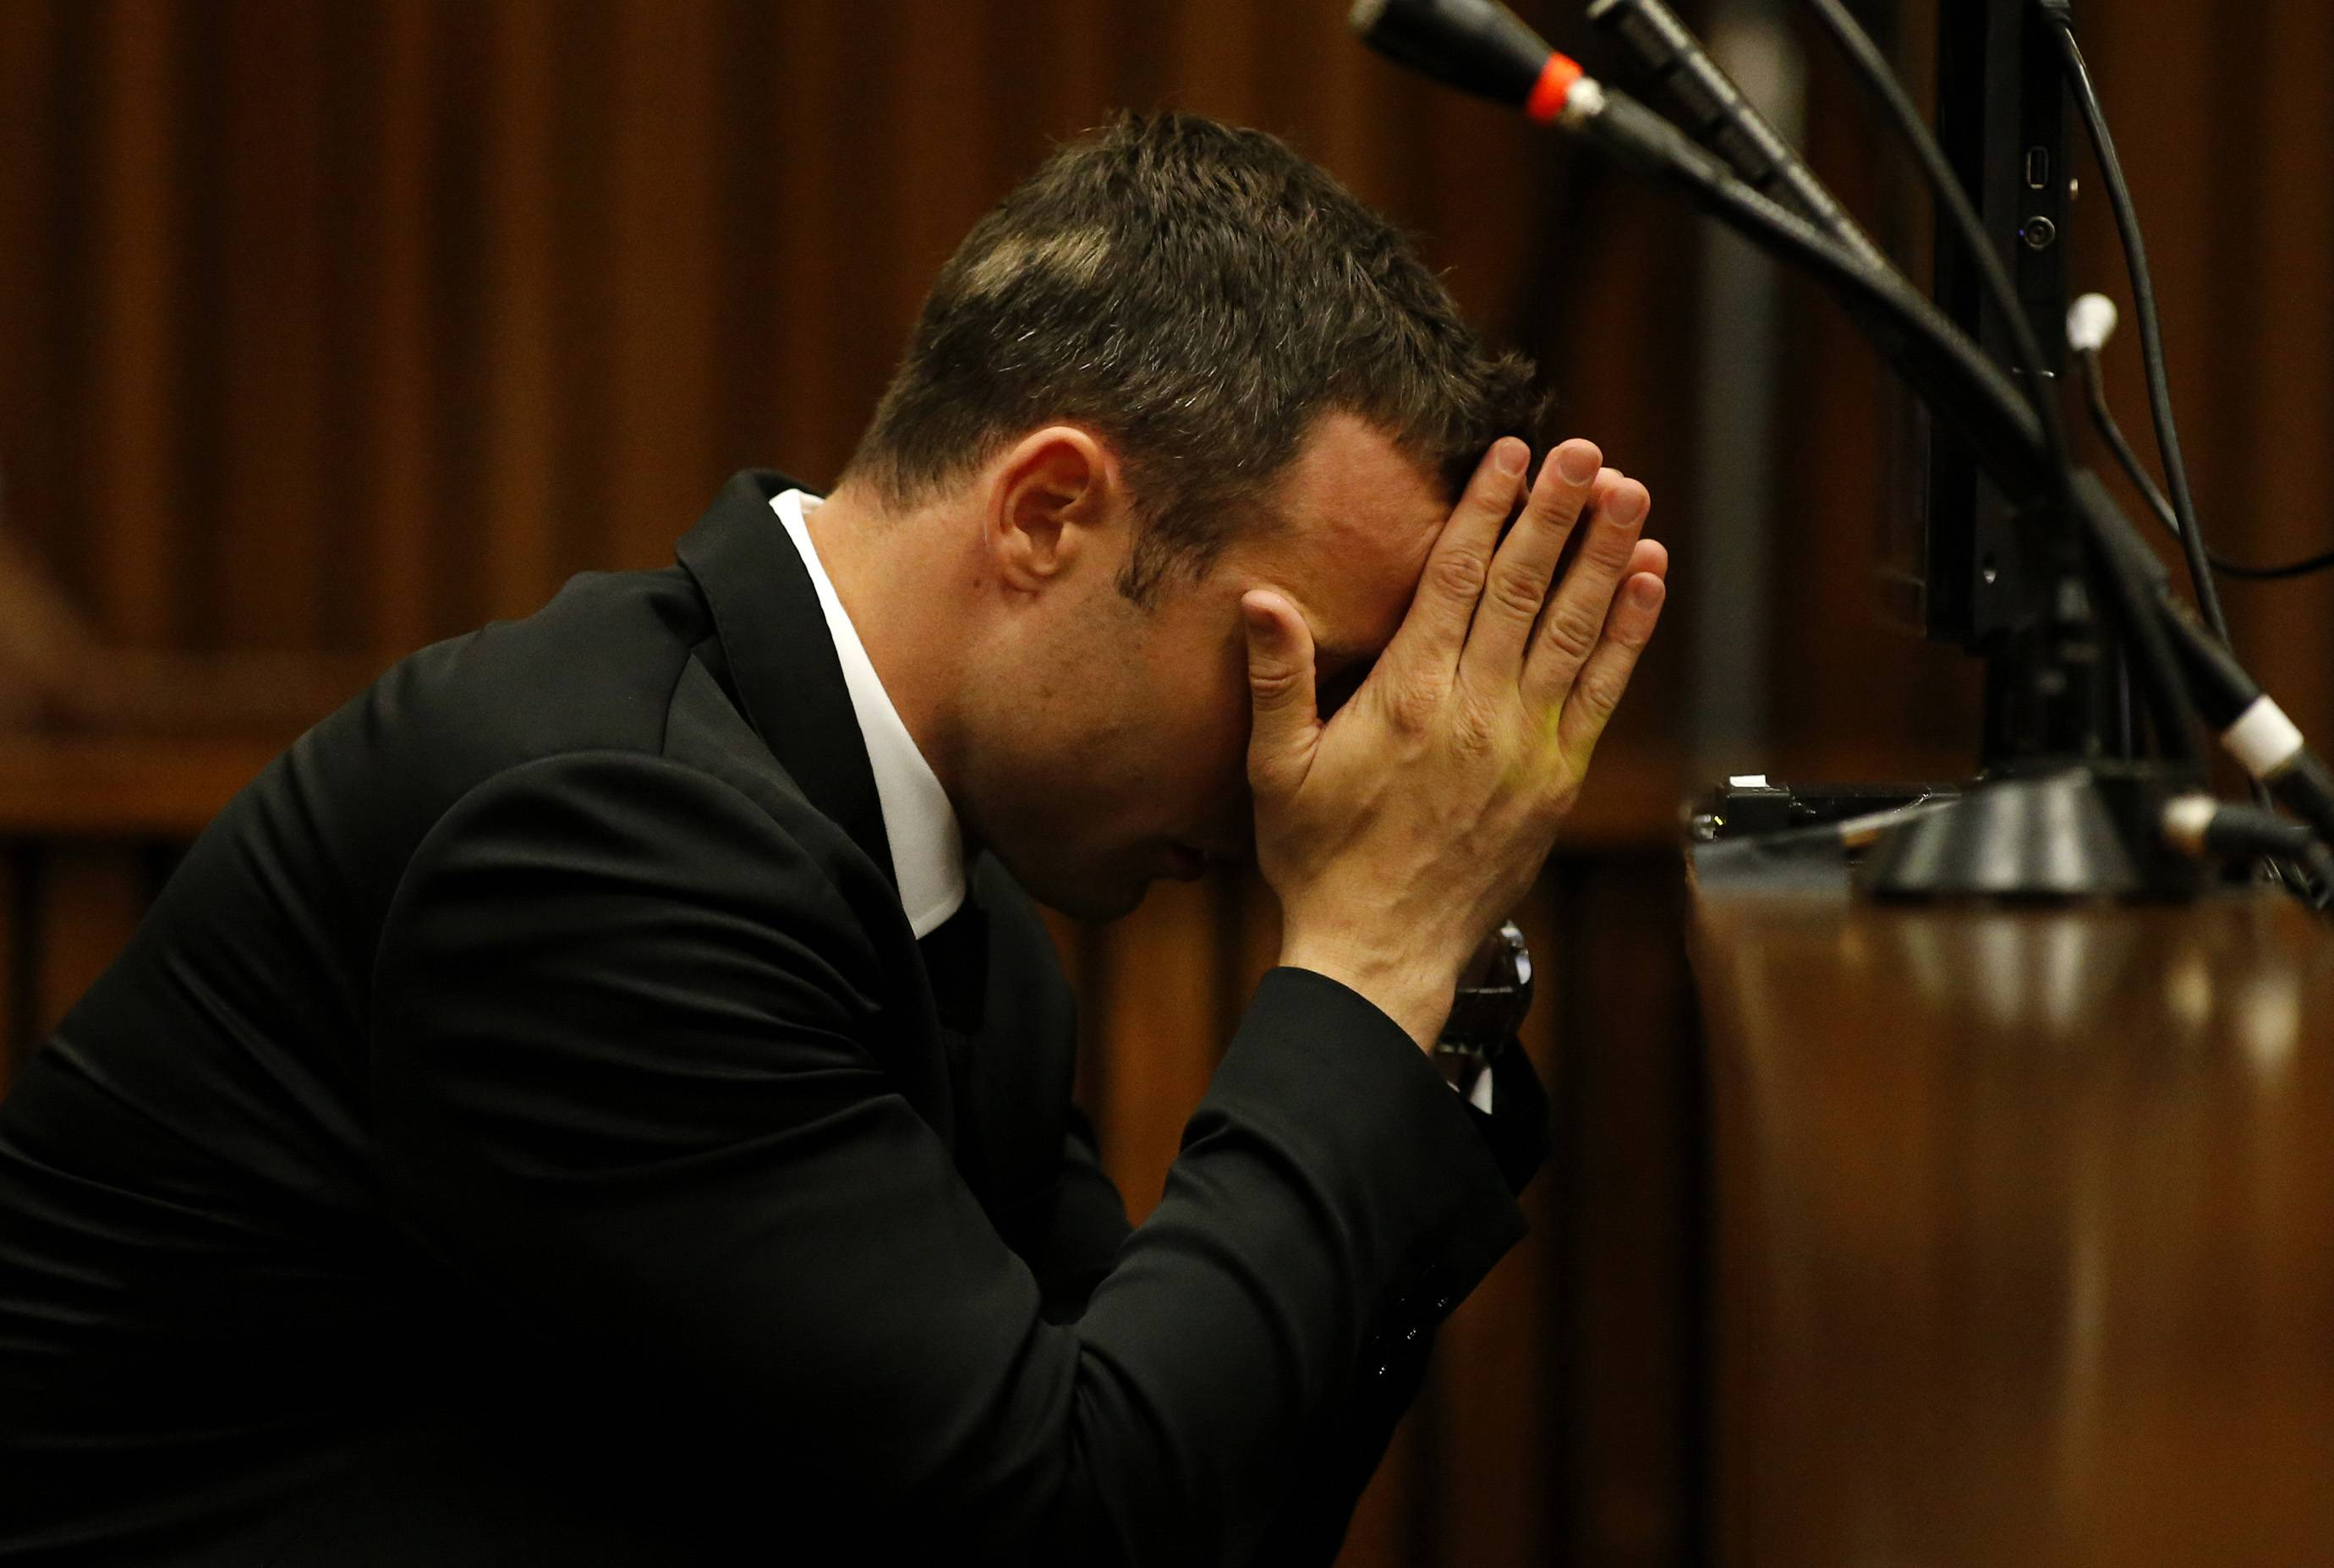 Pistorius' character questioned over gun incident